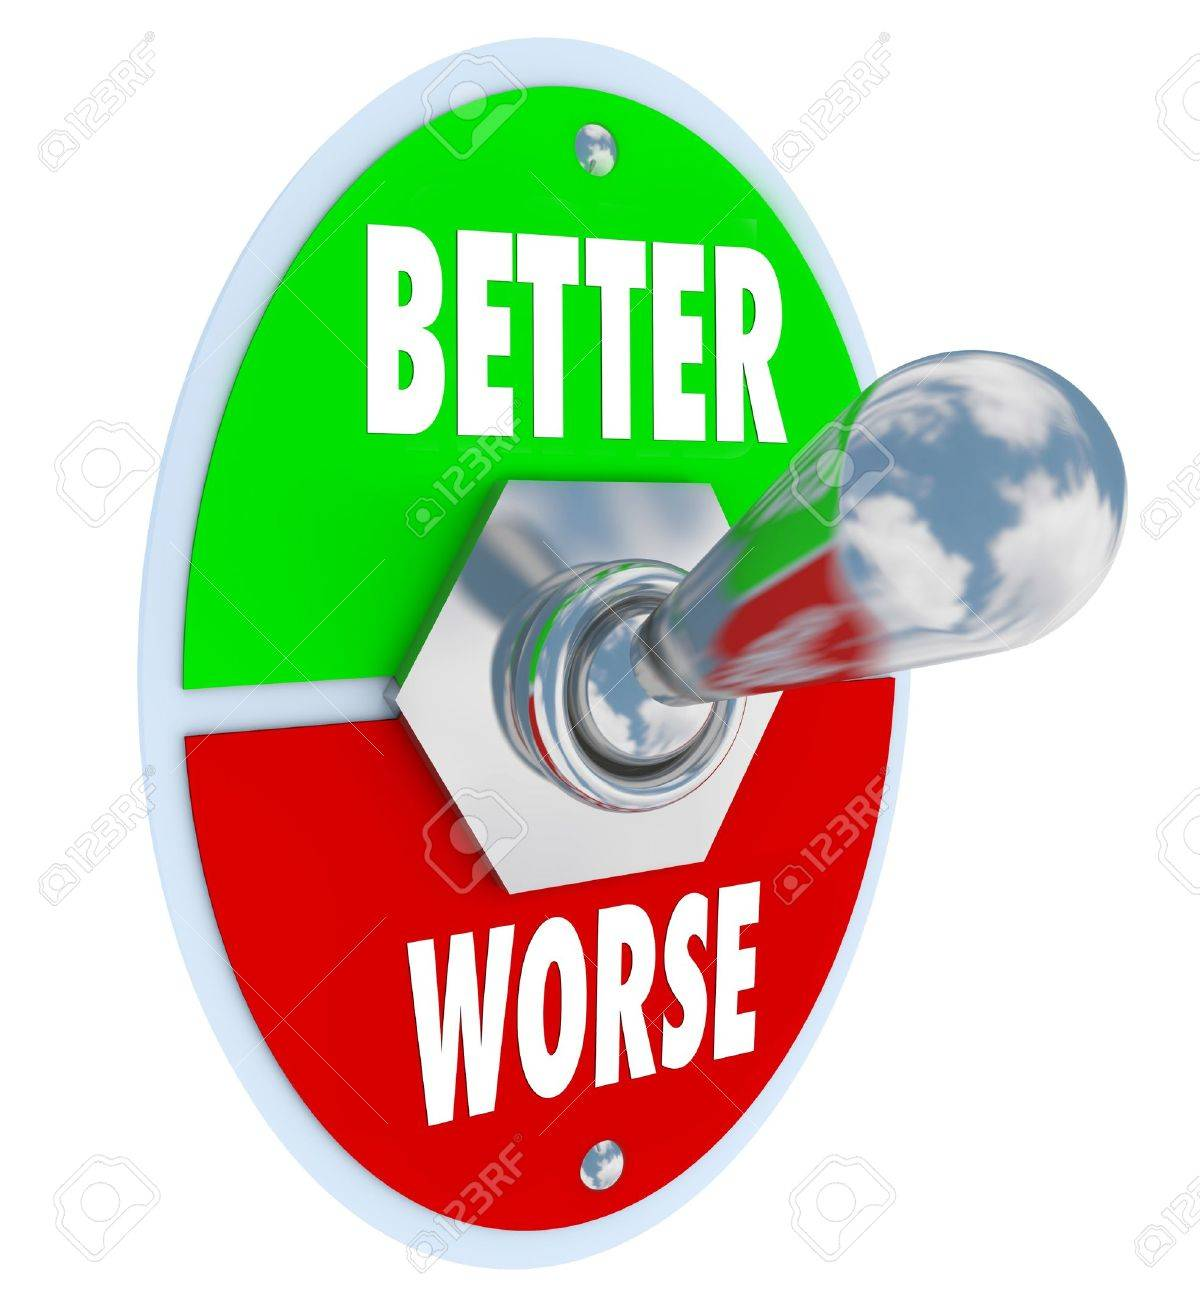 A metal toggle switch with plate reading Better and Worse, with the lever flipped to improve or recover your health and make improvements Stock Photo - 13470956